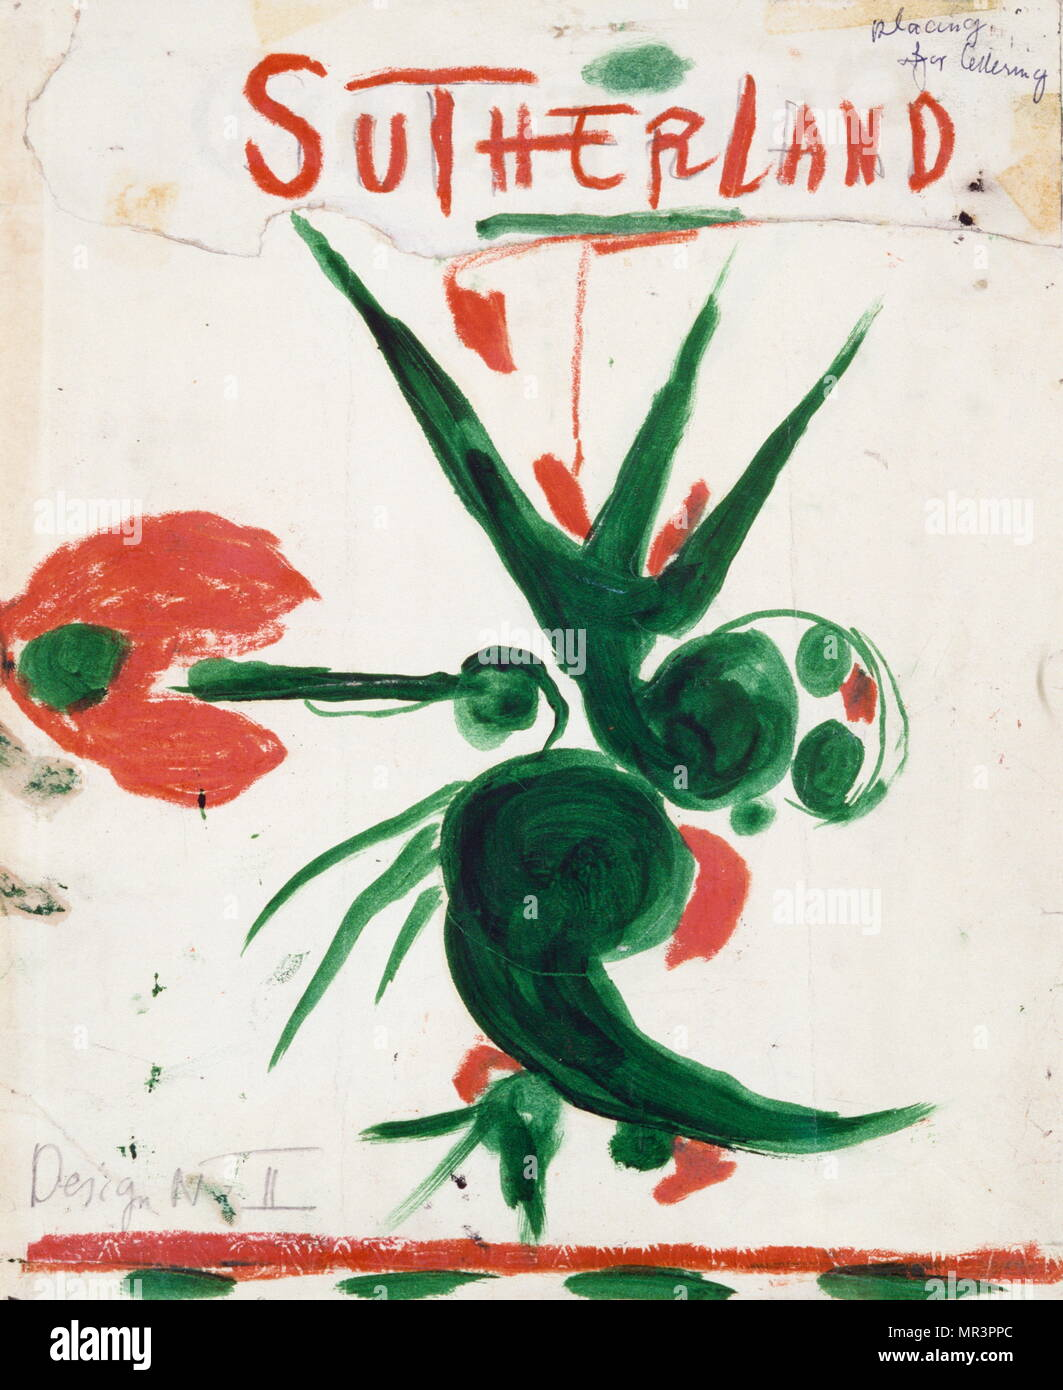 The Bird' 1962, by Graham Sutherland 1903-1980, English surrealist artist - Stock Image